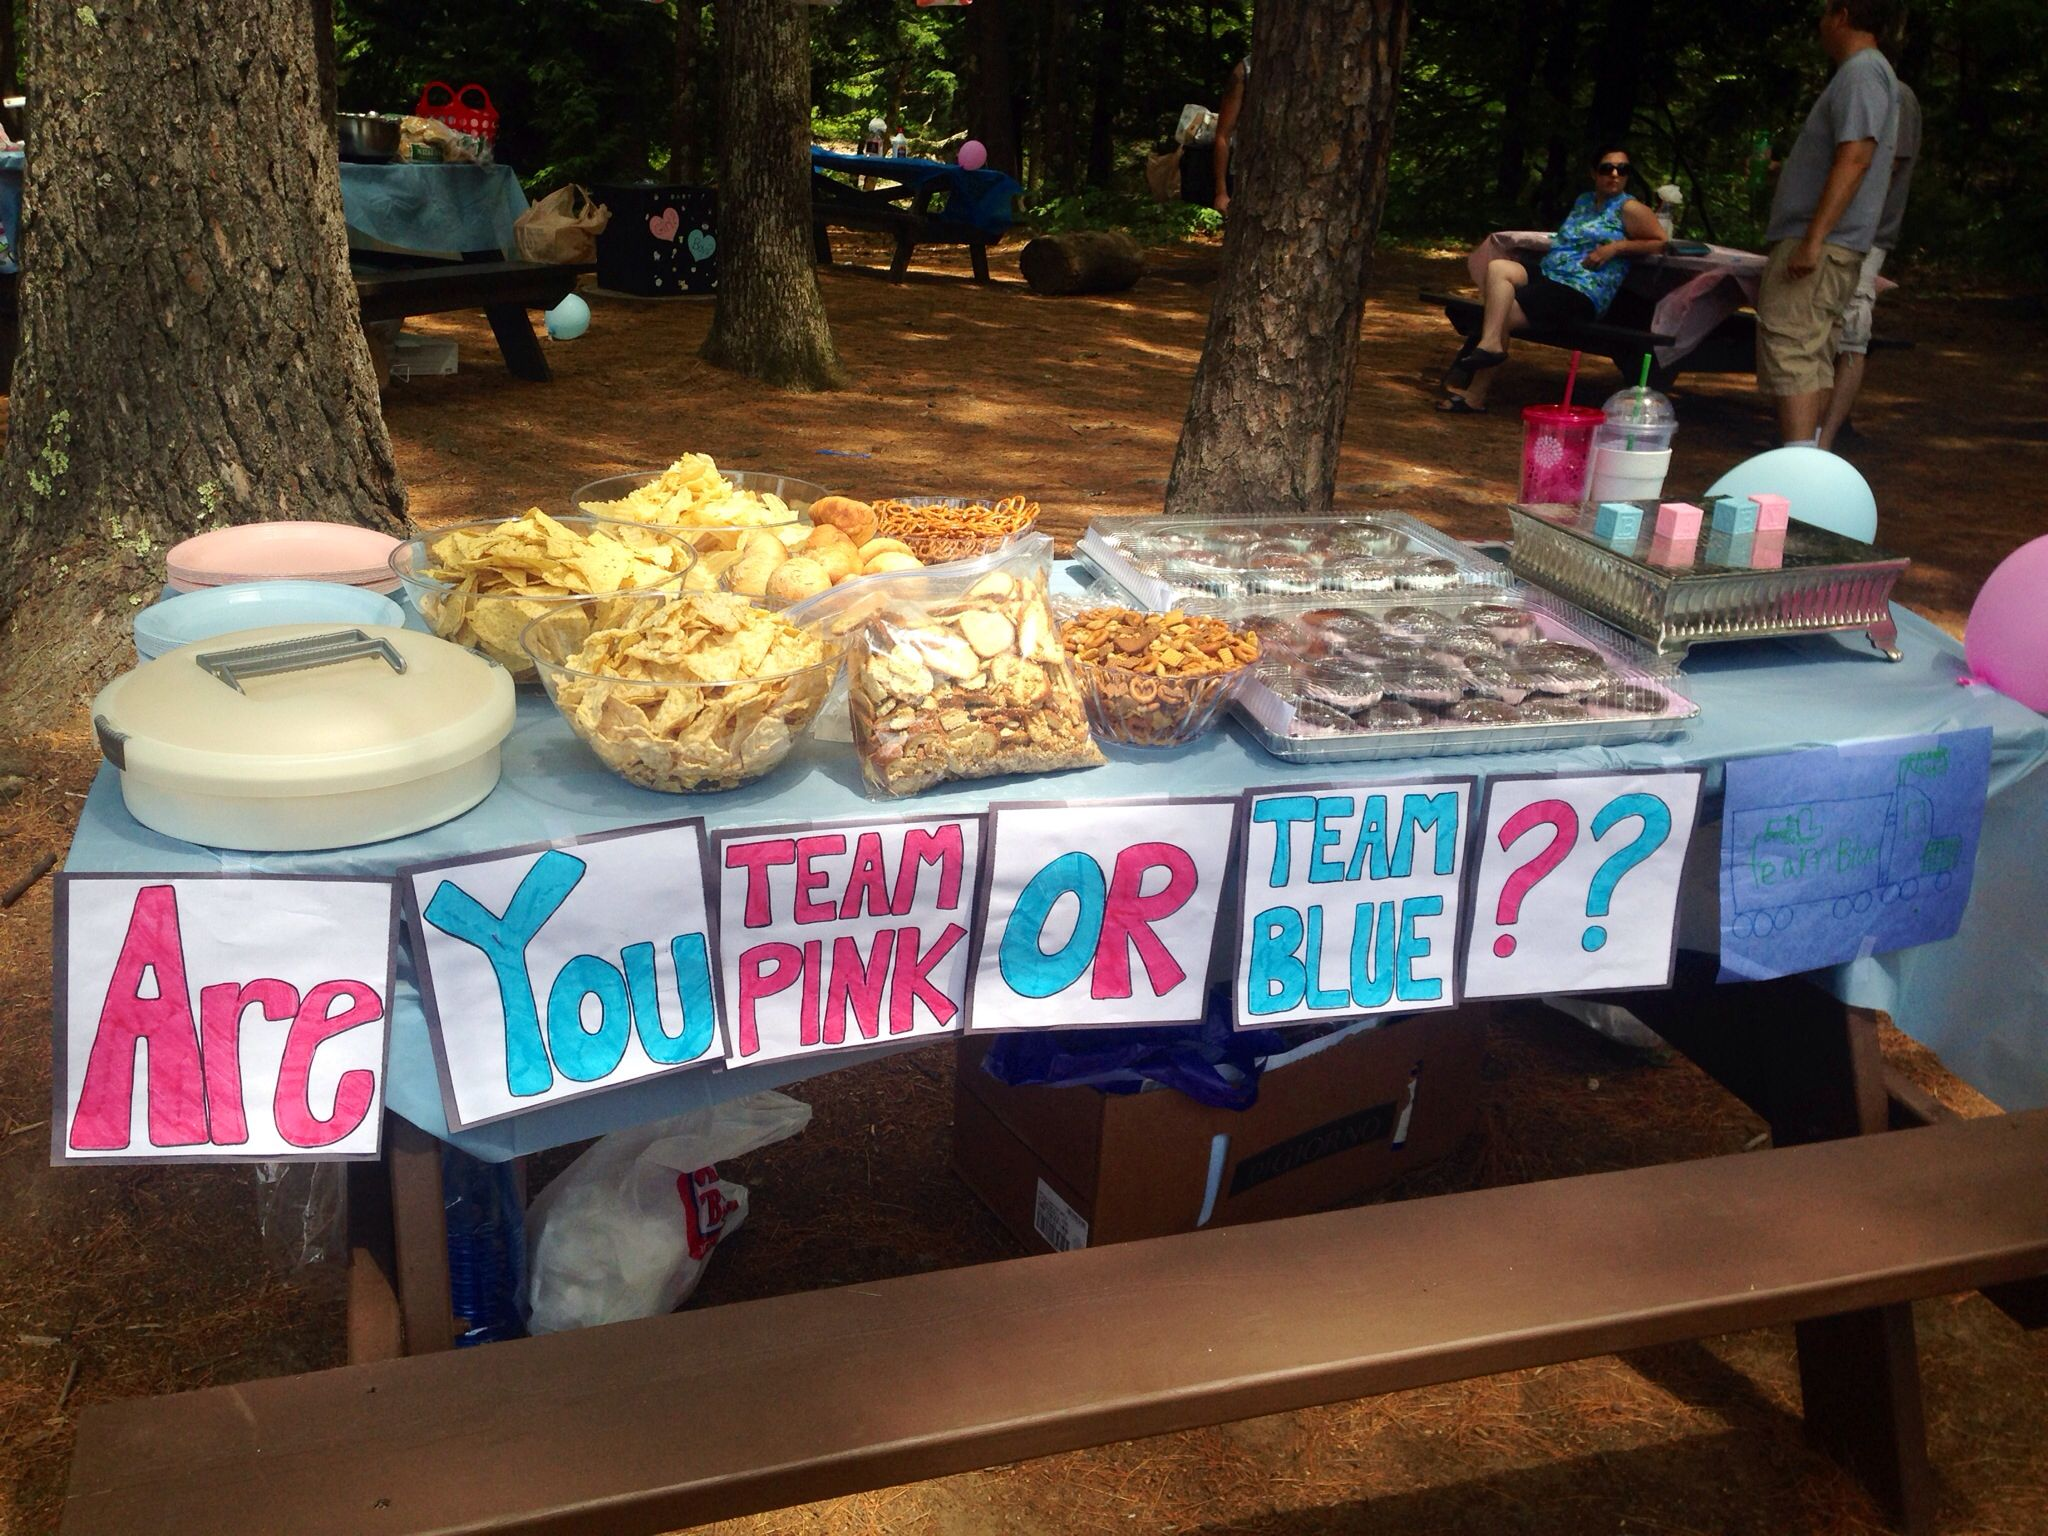 Snack appetizer table at an outdoor gender reveal party Make signs